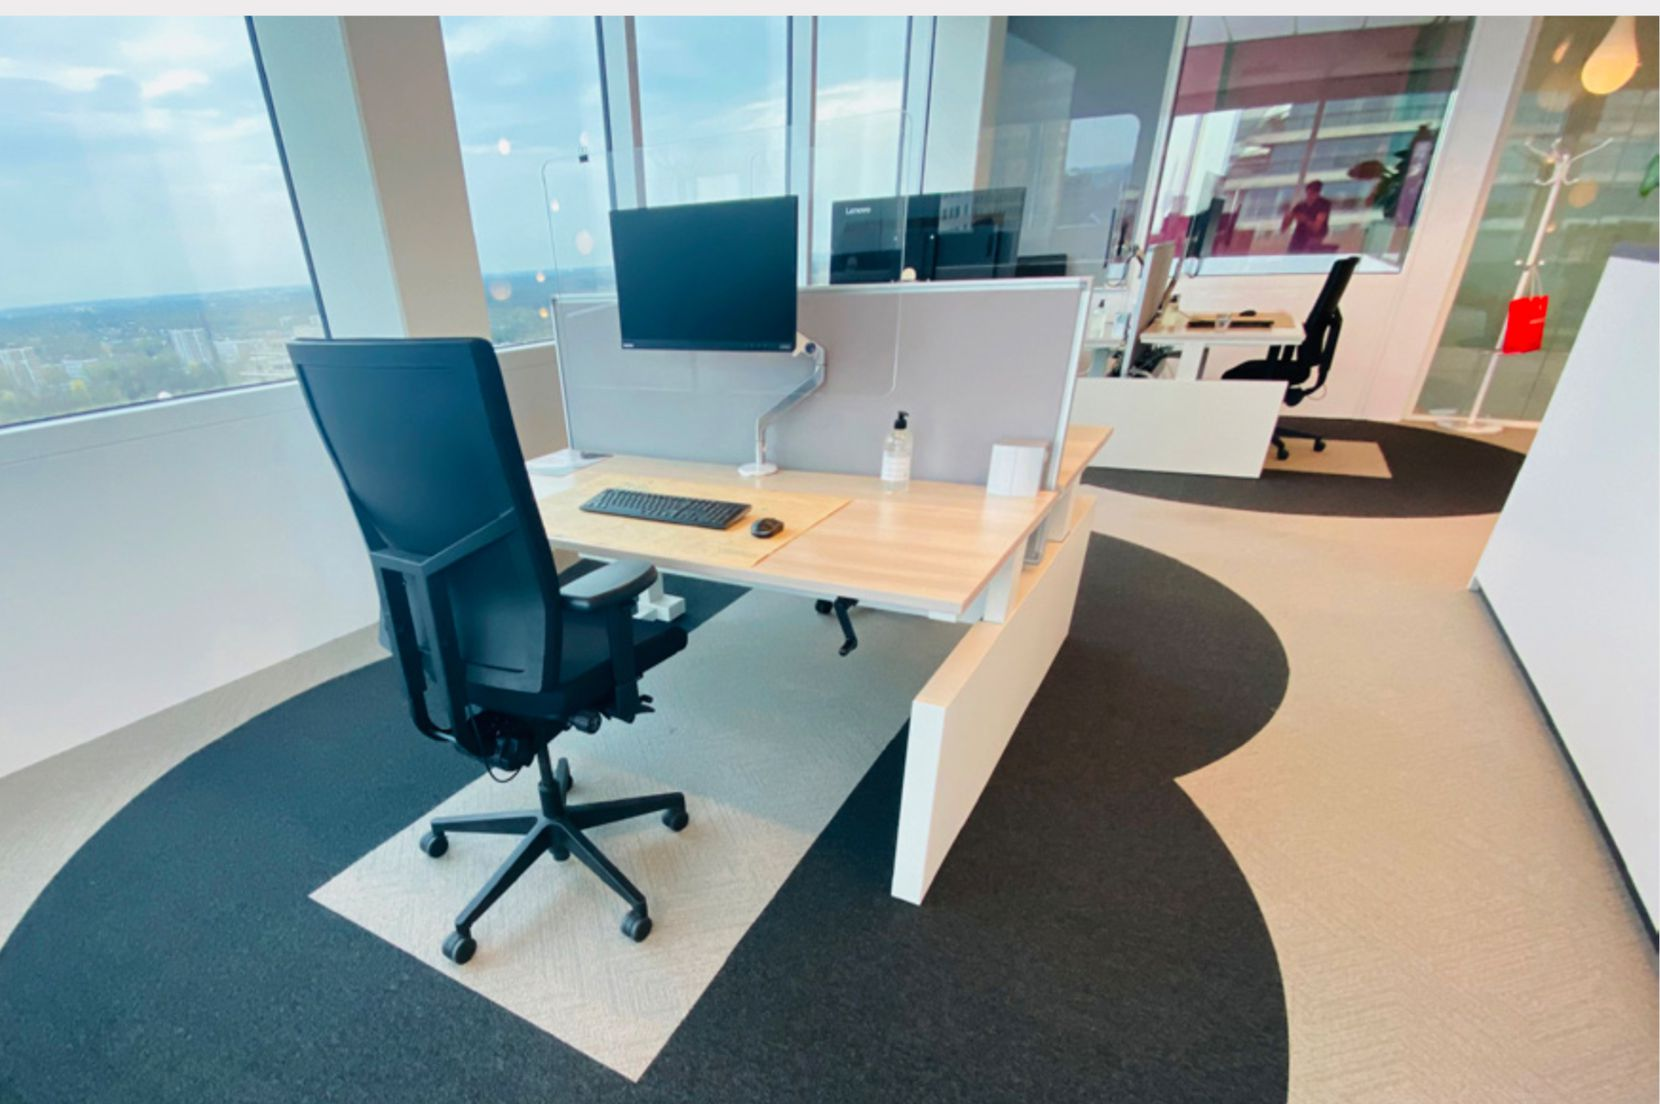 Less dense and more separated workstations will be needed to make workers more comfortable because of COVID-19.